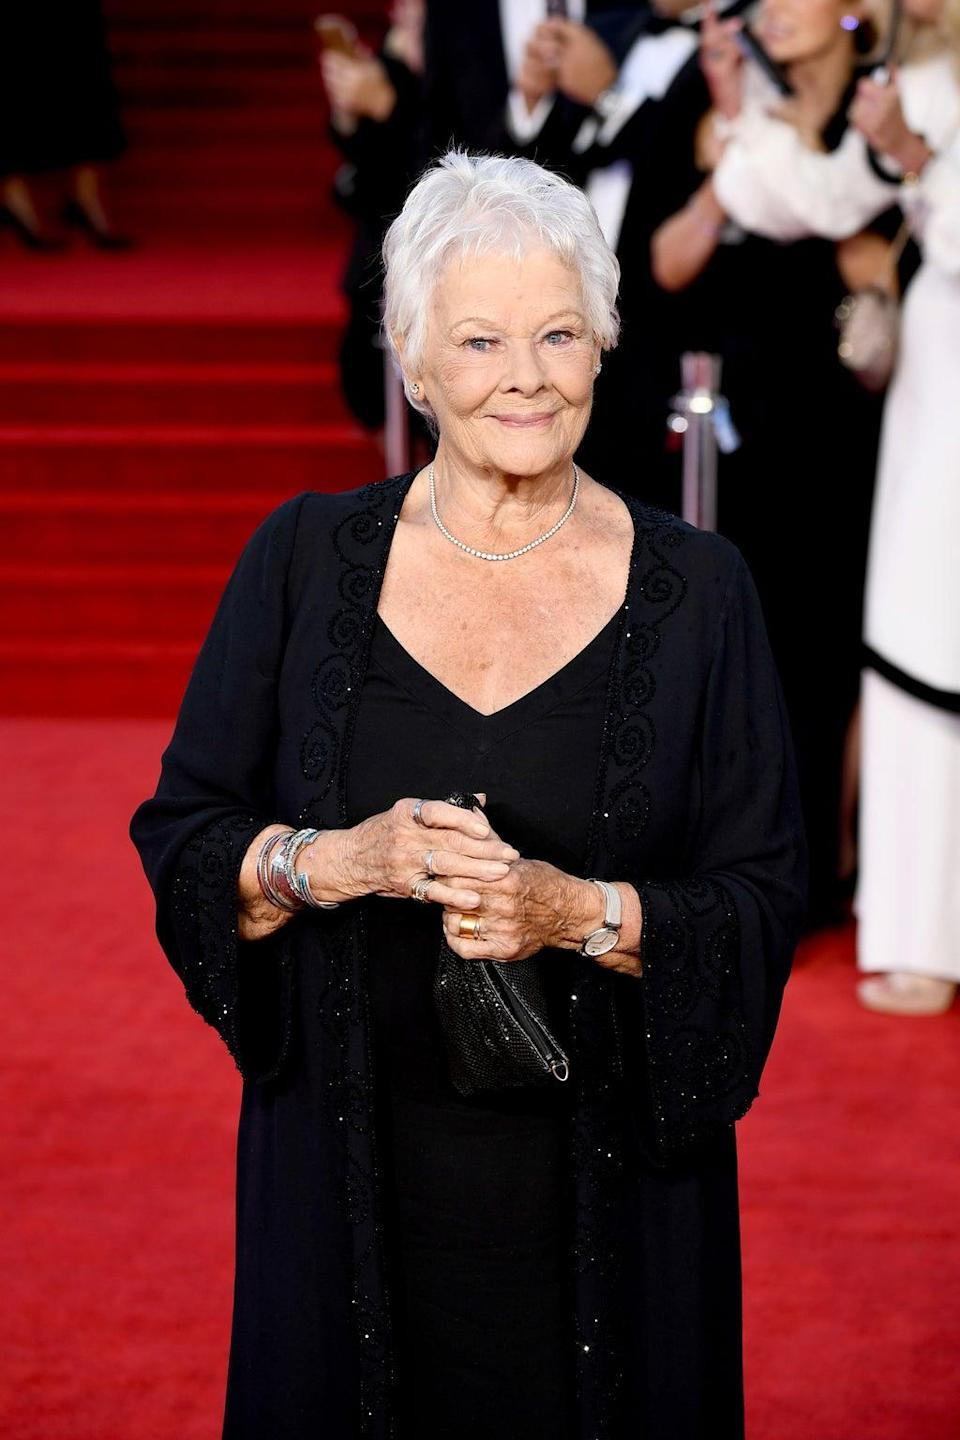 Dame Judi Dench (Jeff Spicer/Getty Images for EON Productions, Metro-Goldwyn-Mayer Studios, and Universal Pictures)